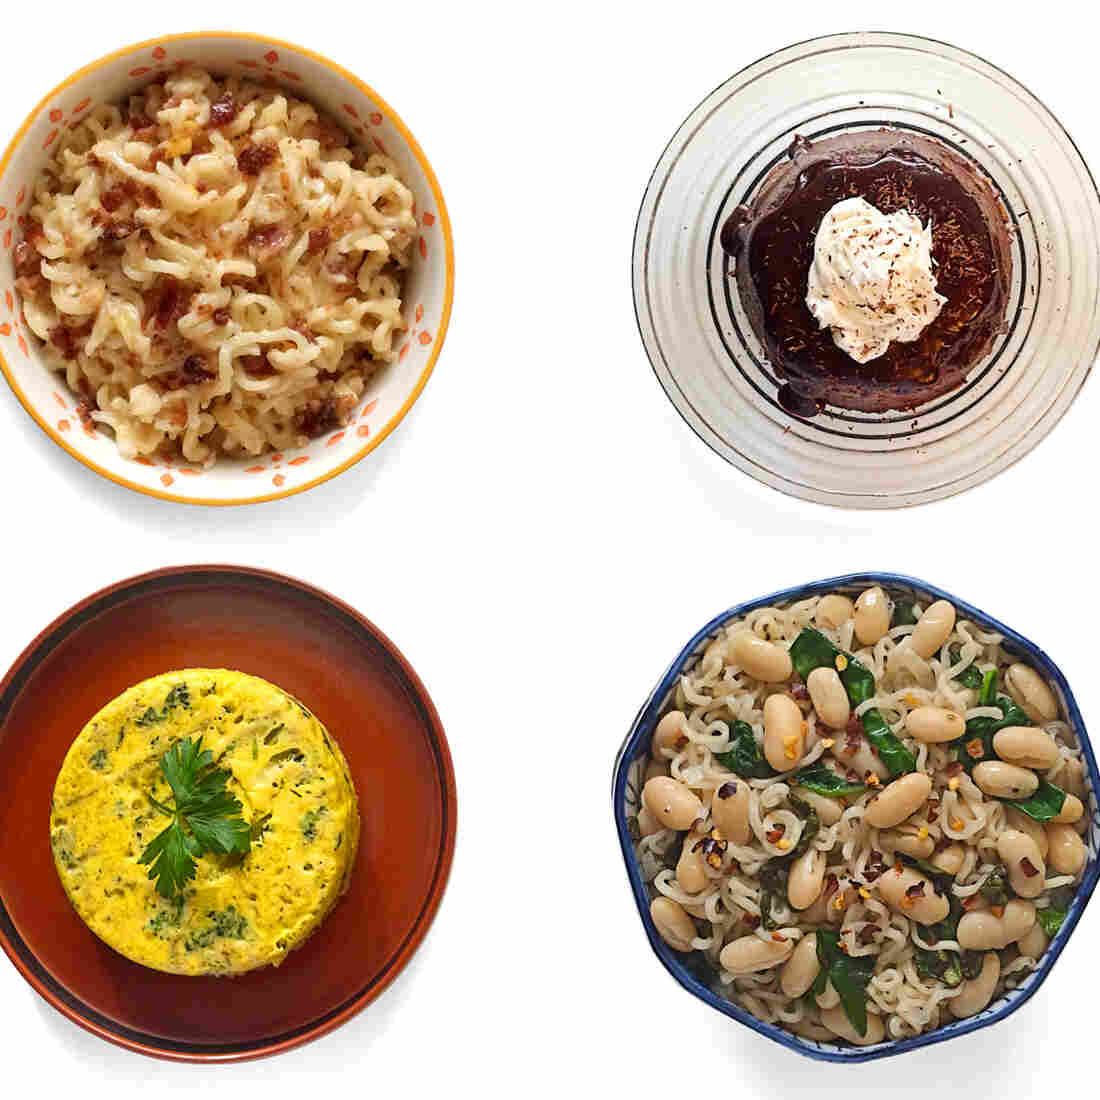 (Top left, clockwise) Macmen N' Cheese; chocolate ramen; udon and egg. (Bottom row) Ramen fritatta; cannellini beans and spinach; and southwest taco from the book Rah! Rah! Ramen.